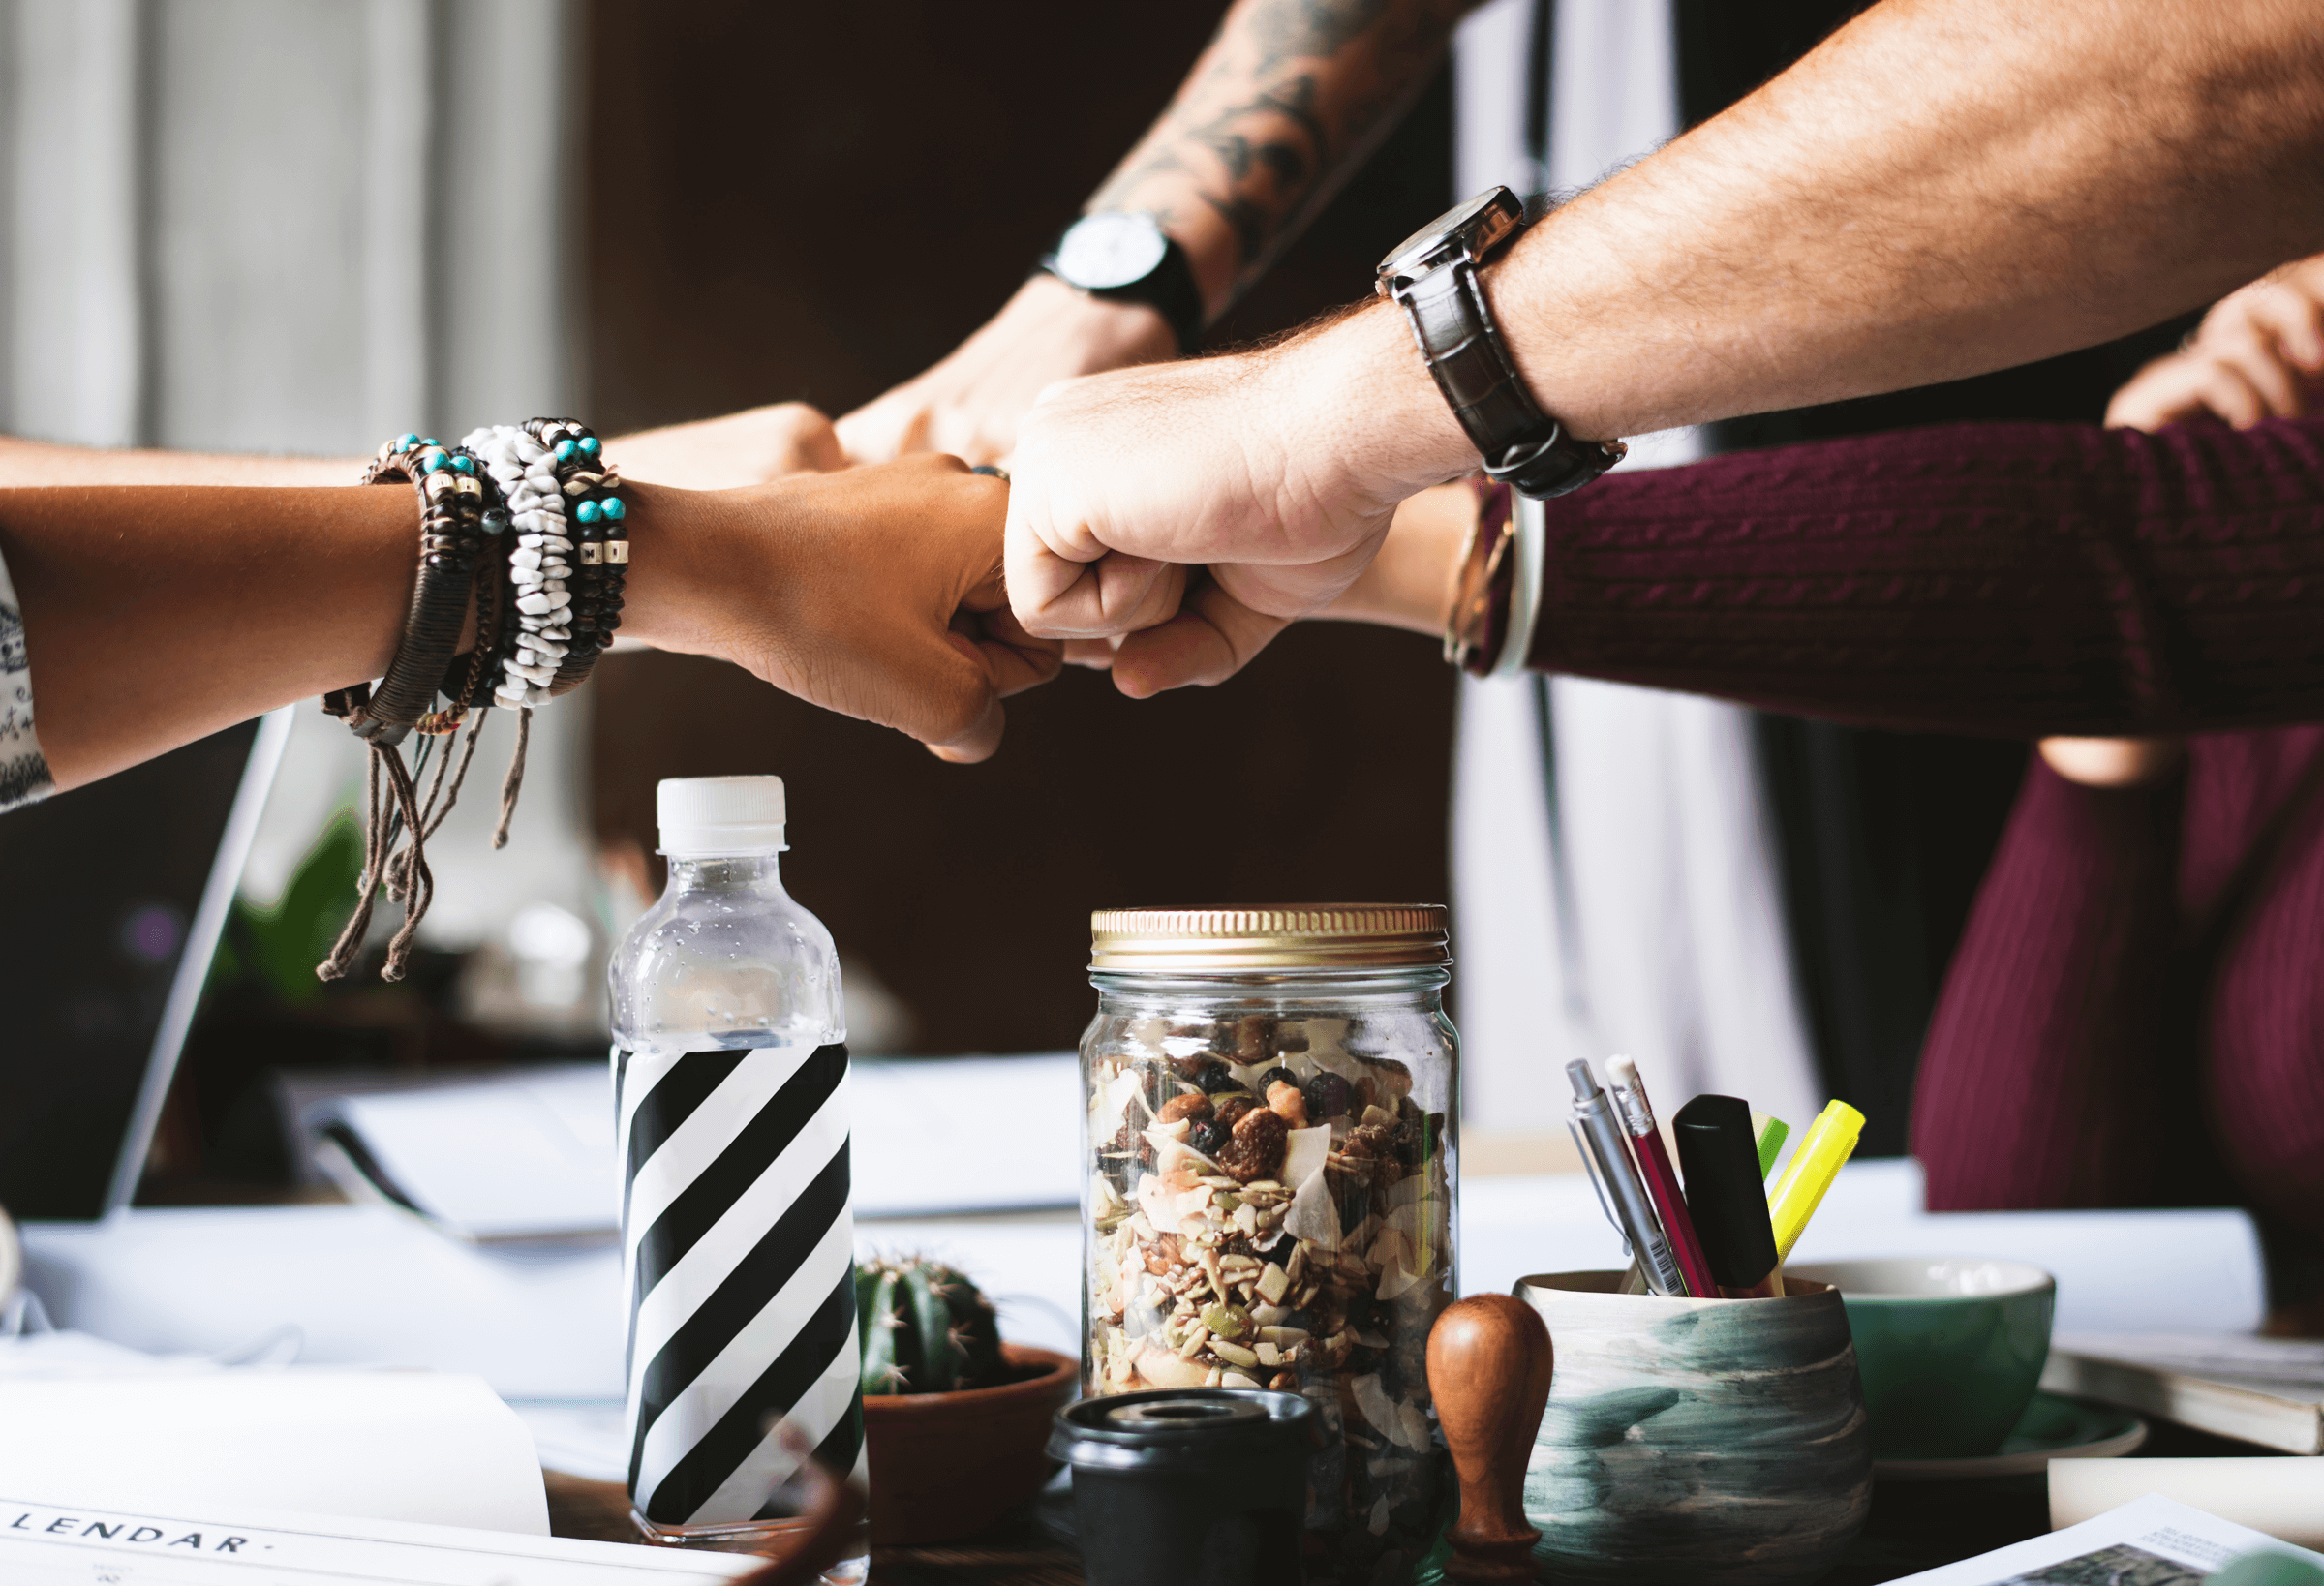 five men and women fist bump over table with paper on - collaborating on ideas